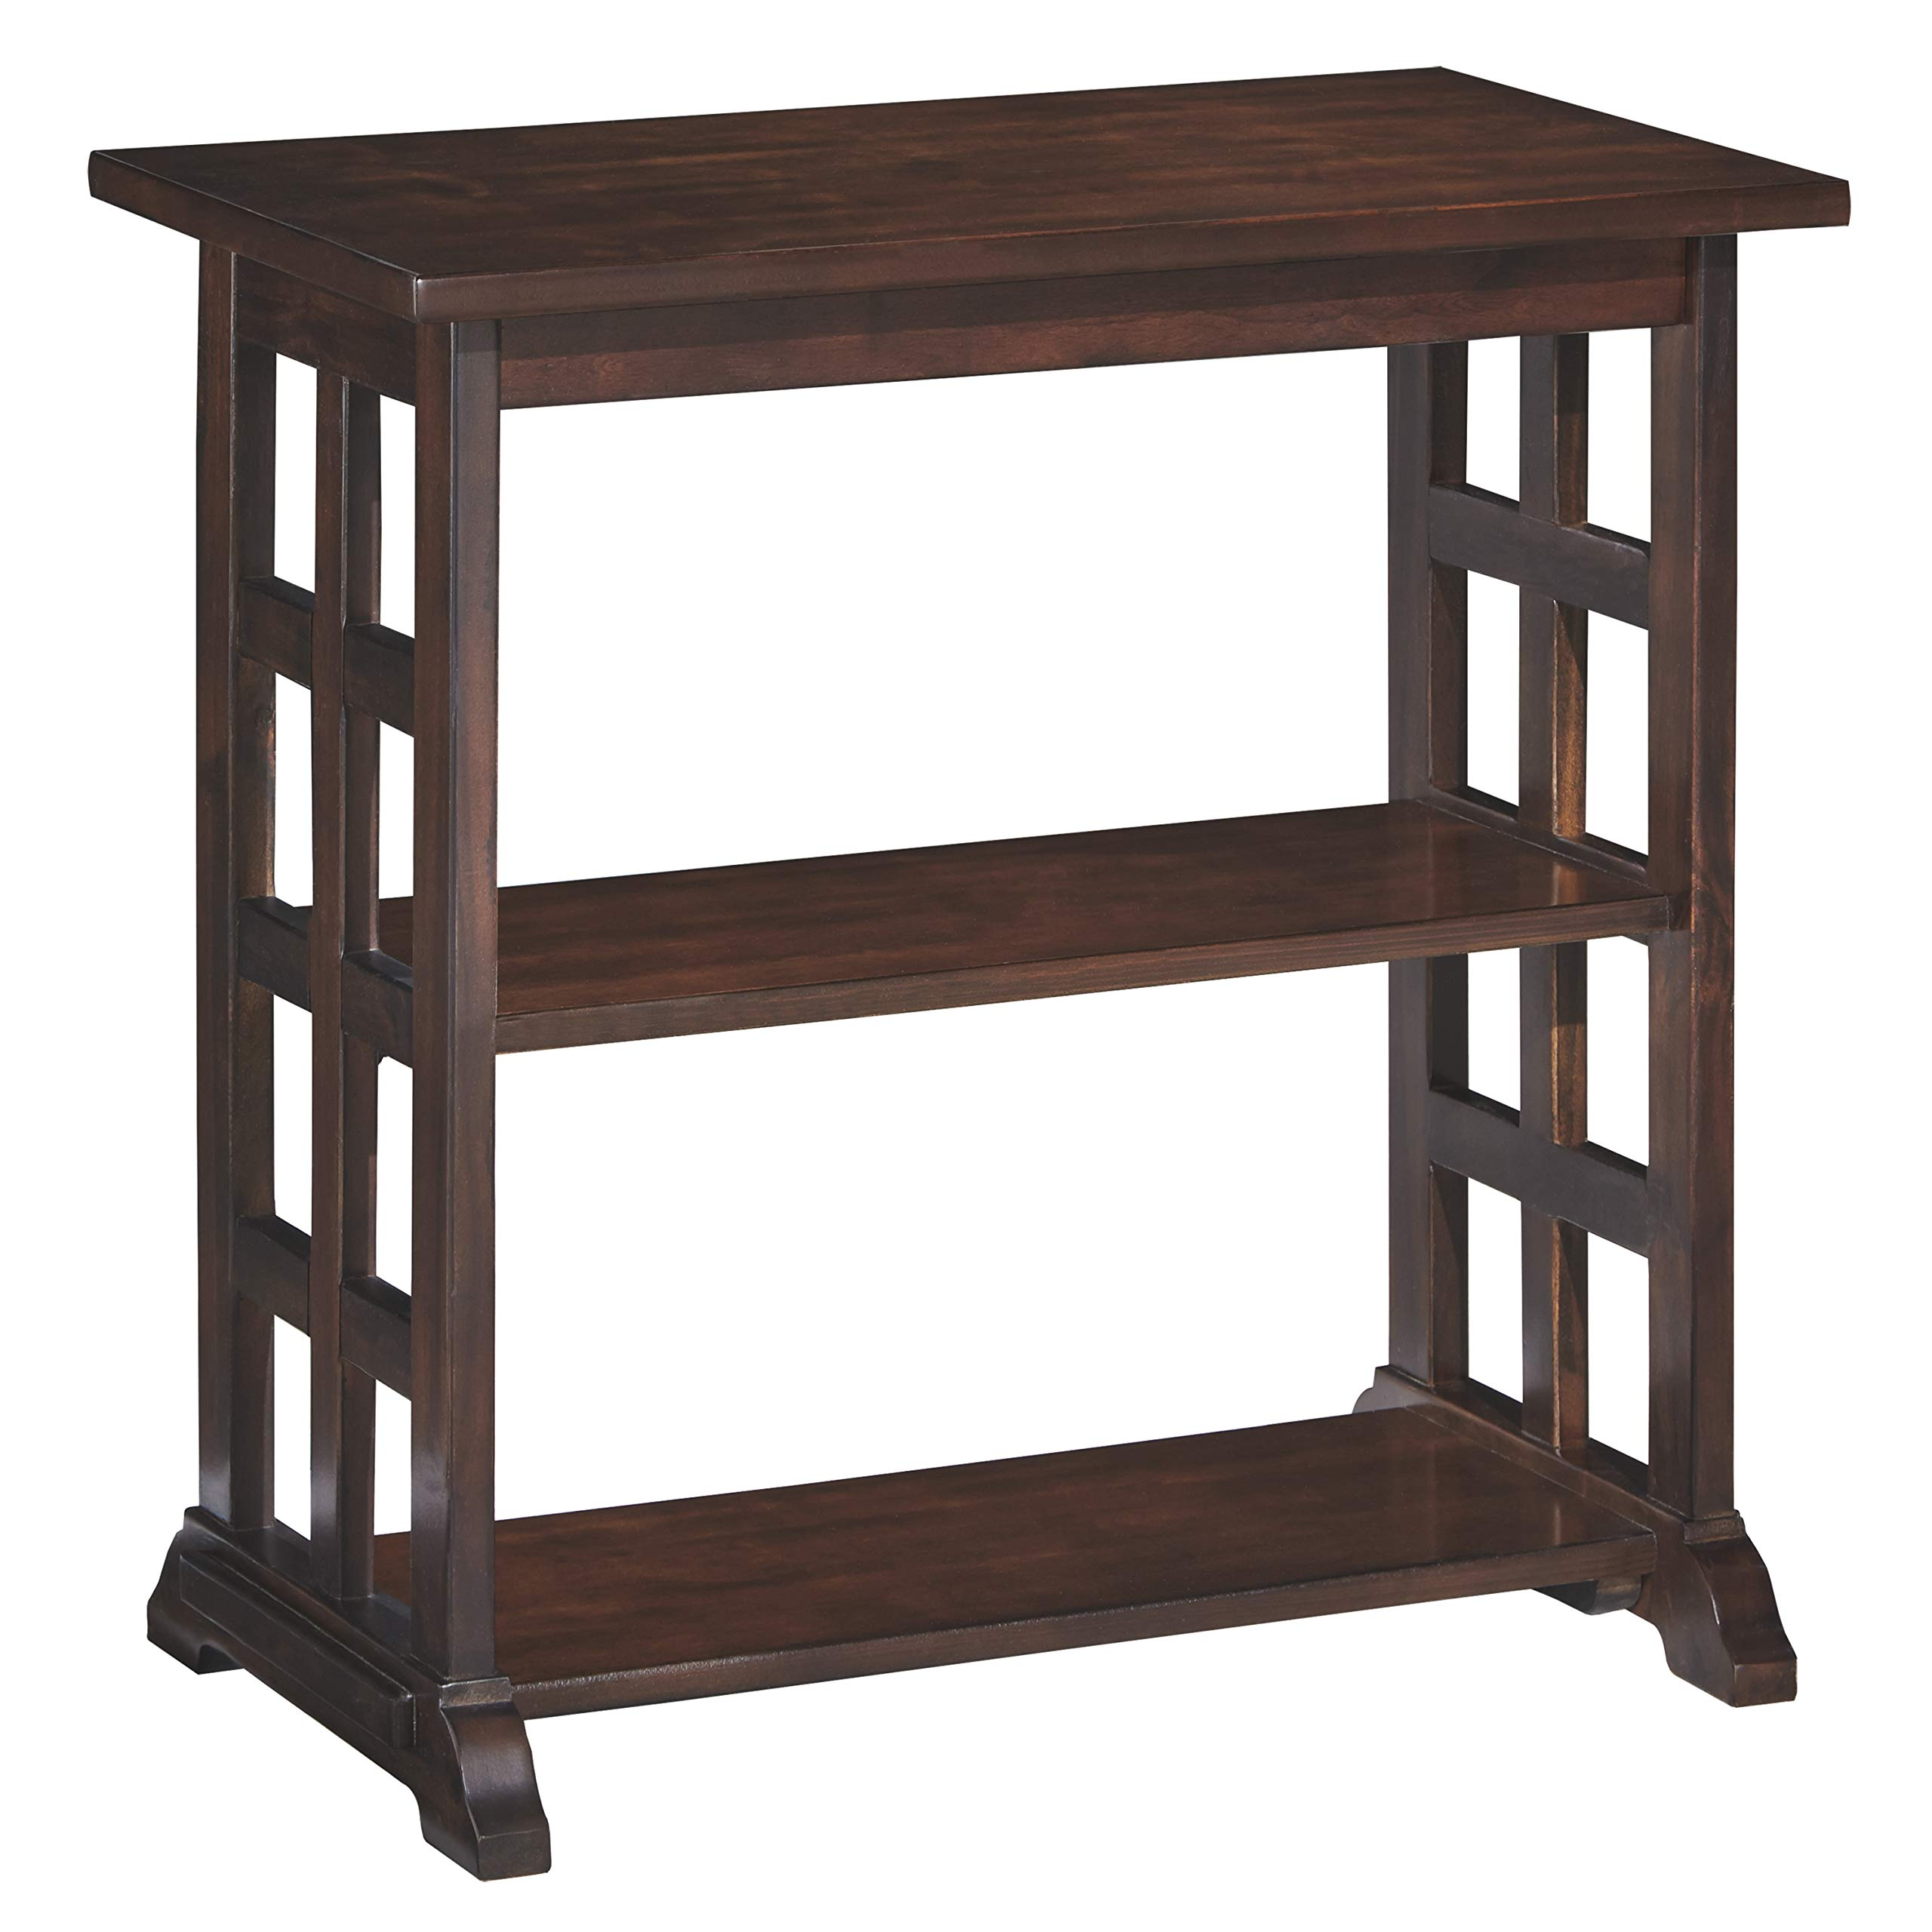 Ashley Furniture Signature Design - Braunsen Chairside End Table - 2 Shelves - Contemporary Lattice Design- Brown by Signature Design by Ashley